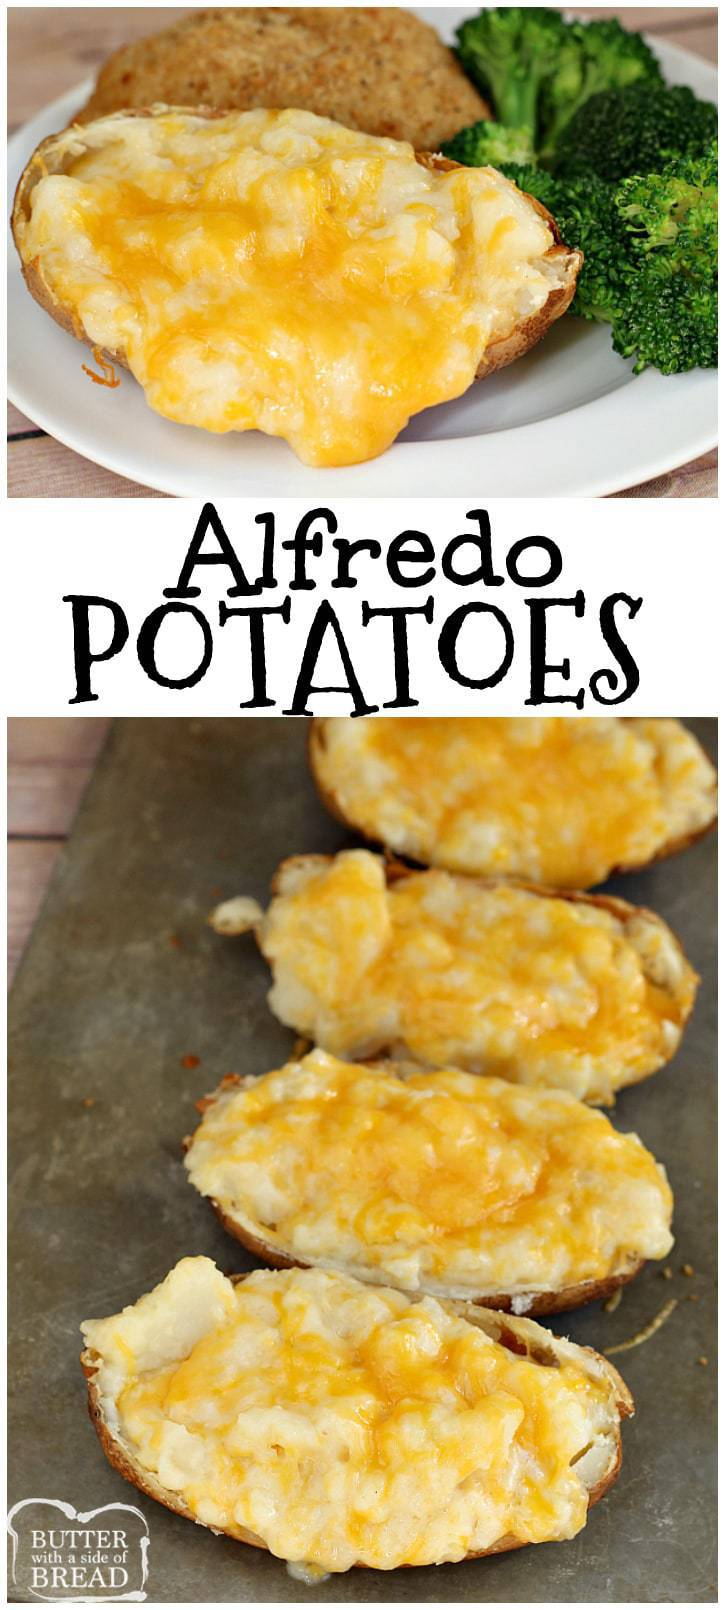 Alfredo Potatoes - Butter With a Side of Bread